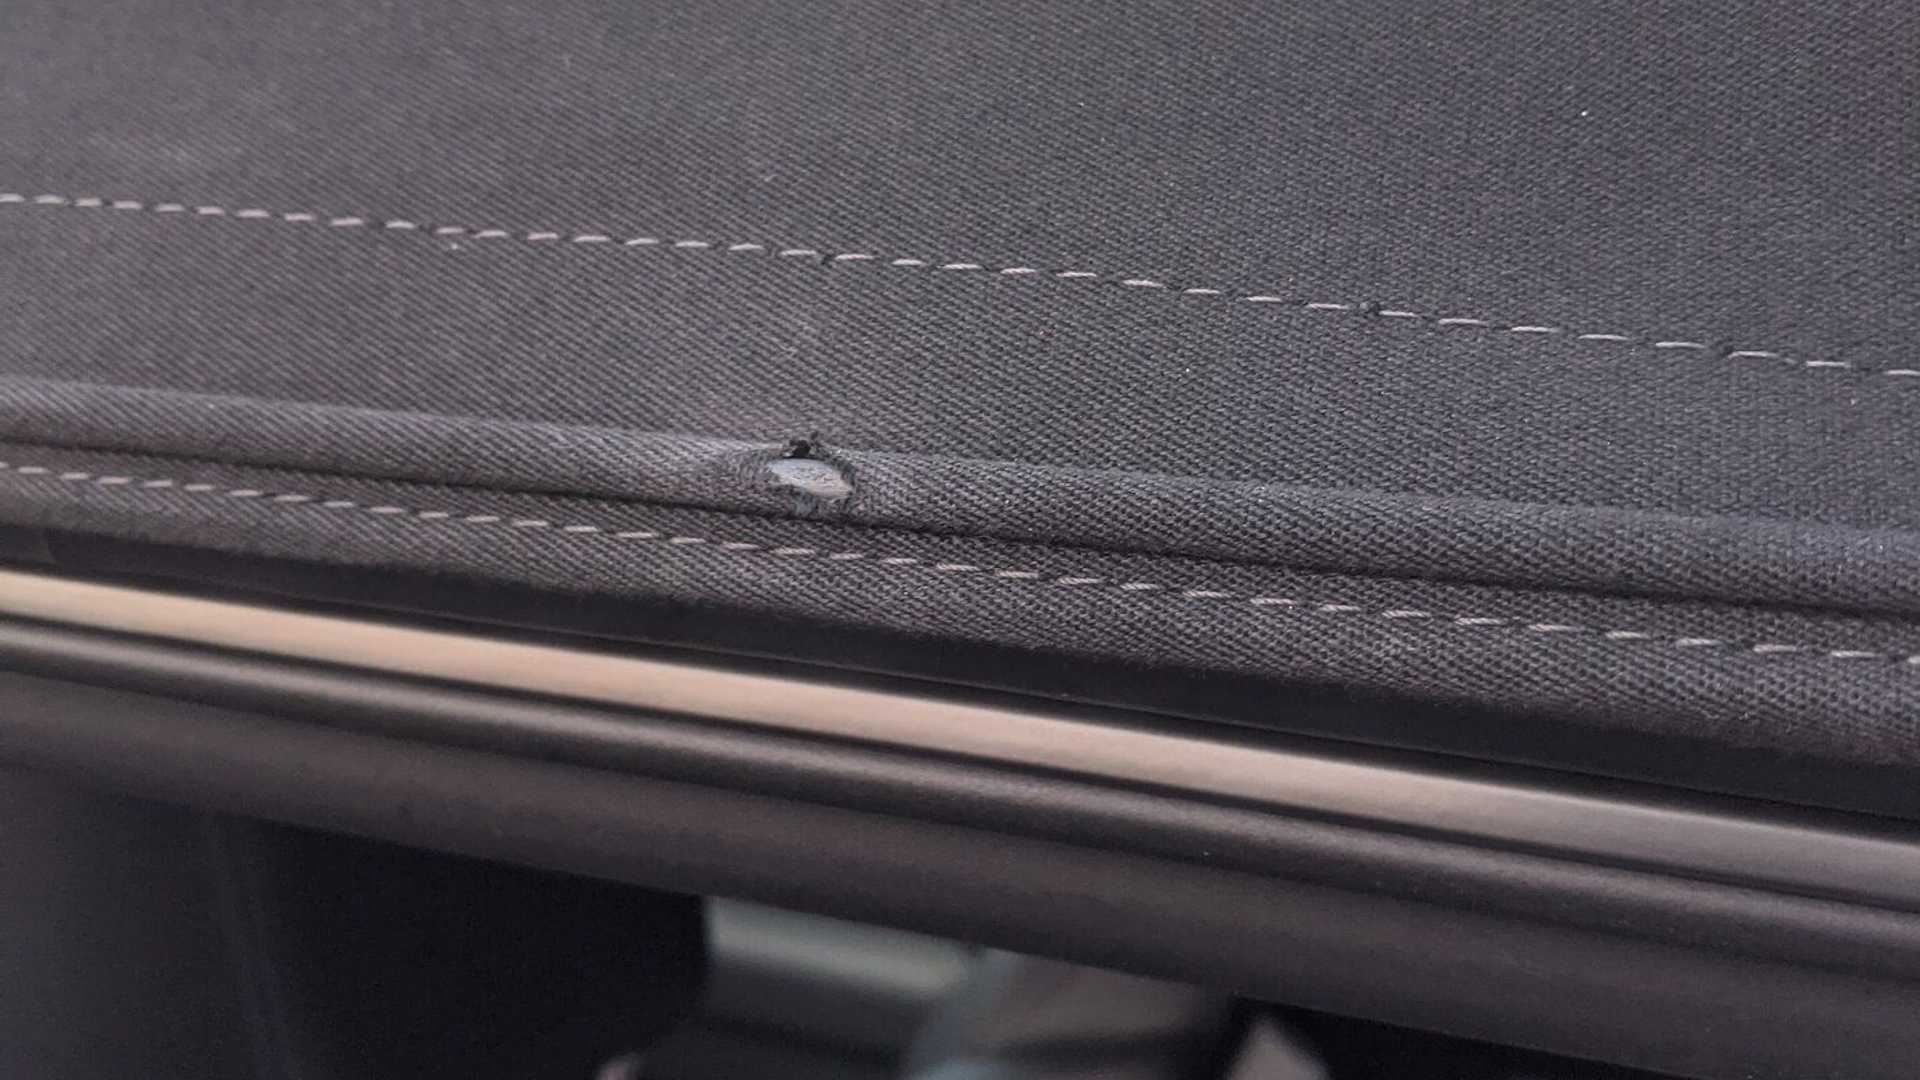 2021 Ford Bronco Owner Suffers Early Wear Straight Through Soft Top